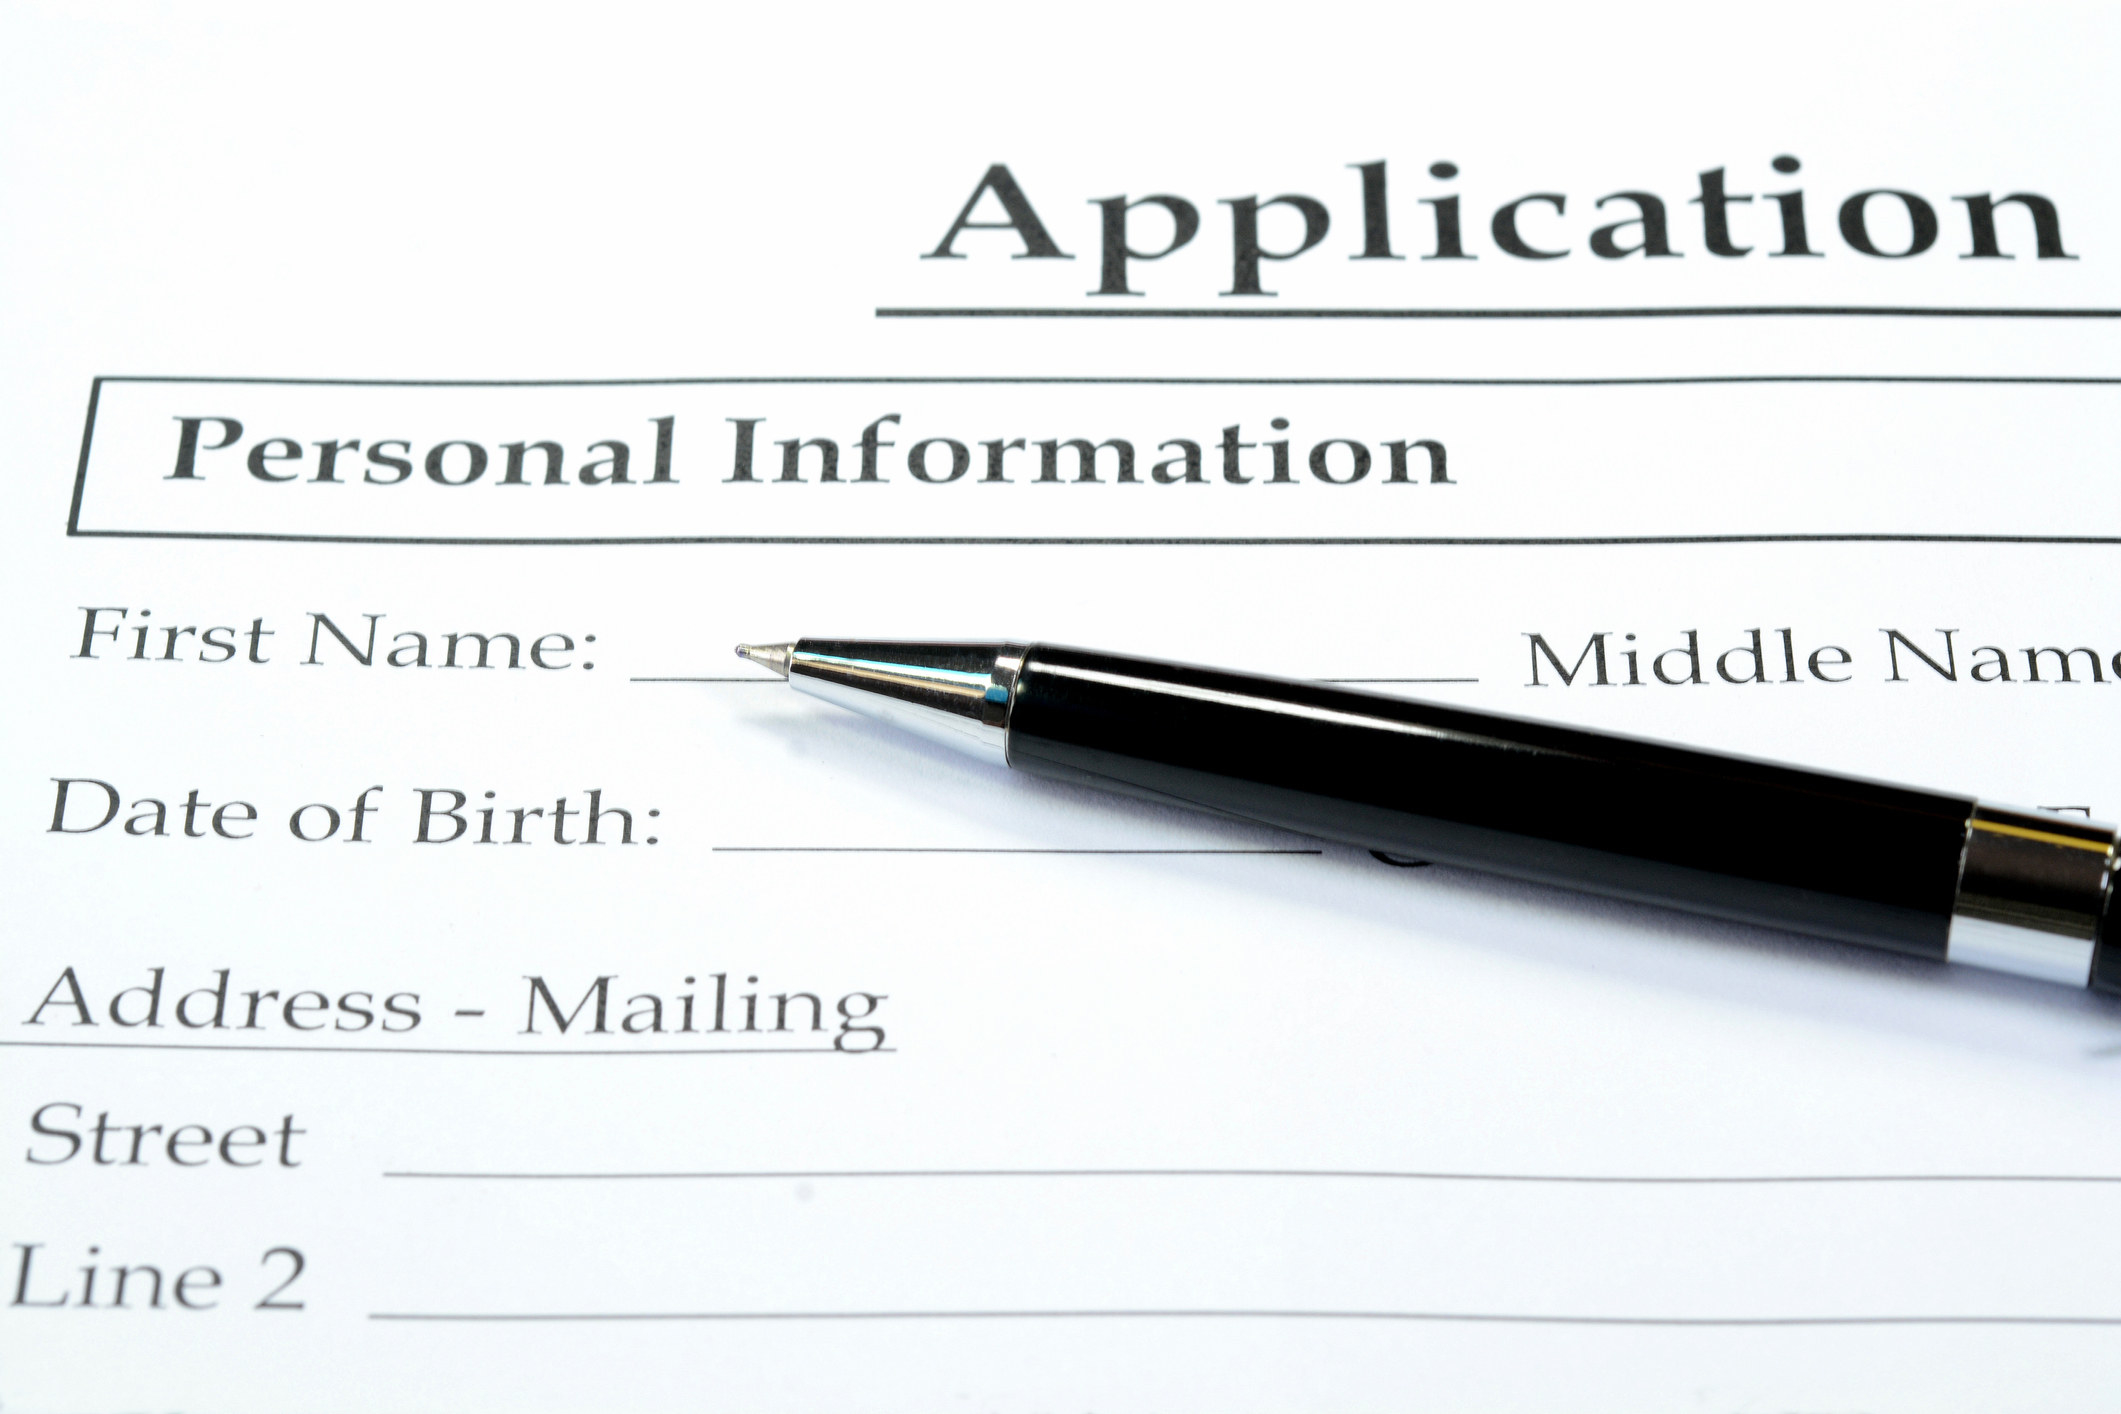 A stock image of an application